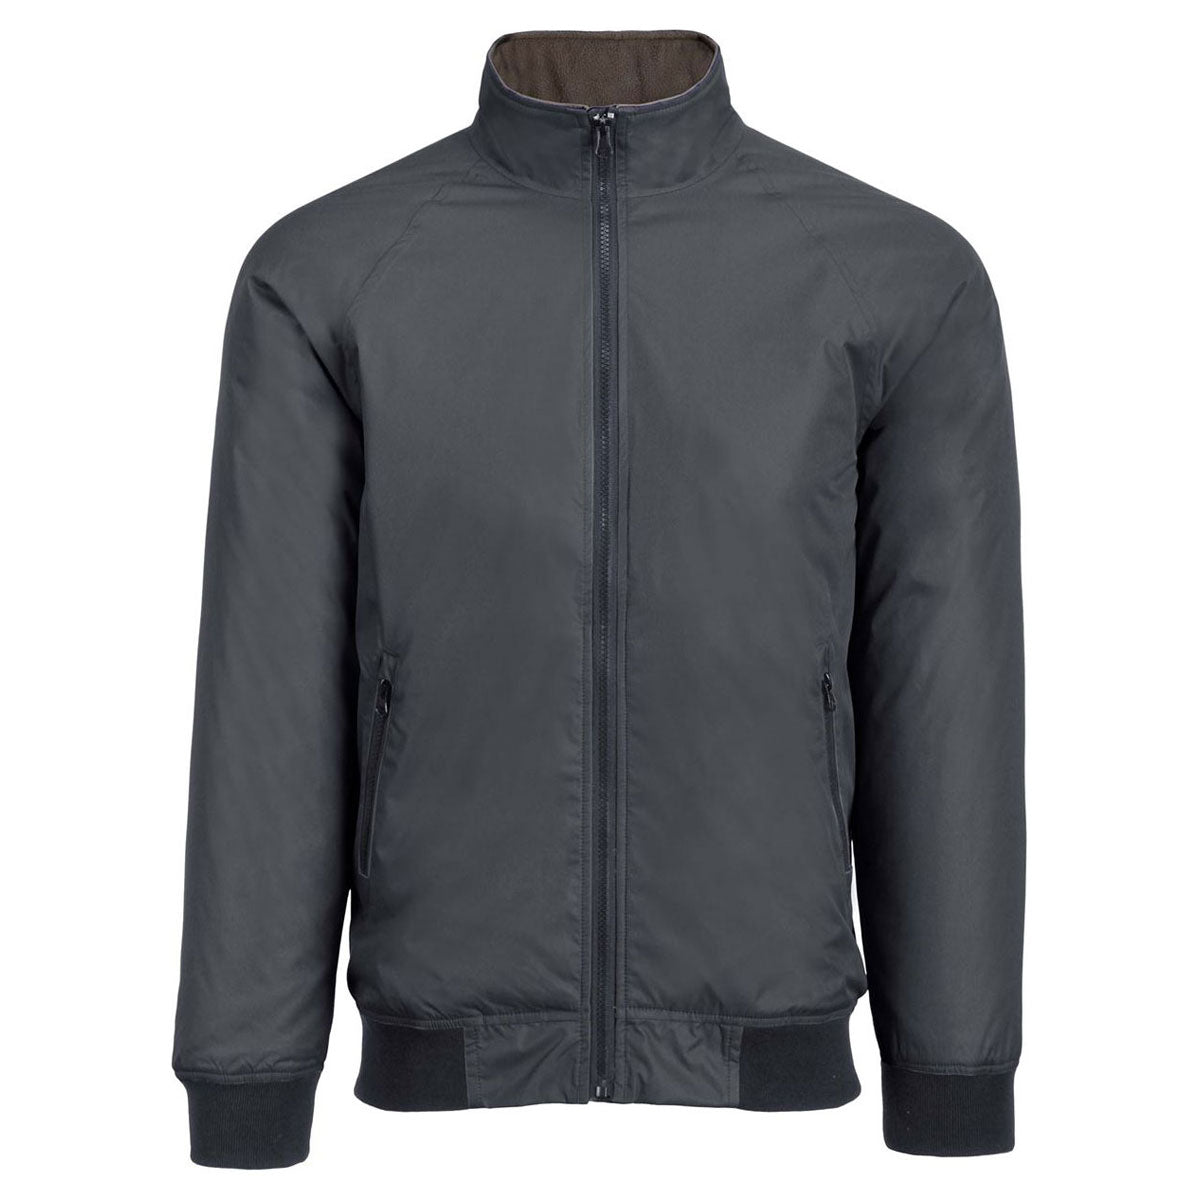 Landway Men's Charcoal New Three Seasons Fleece Jacket